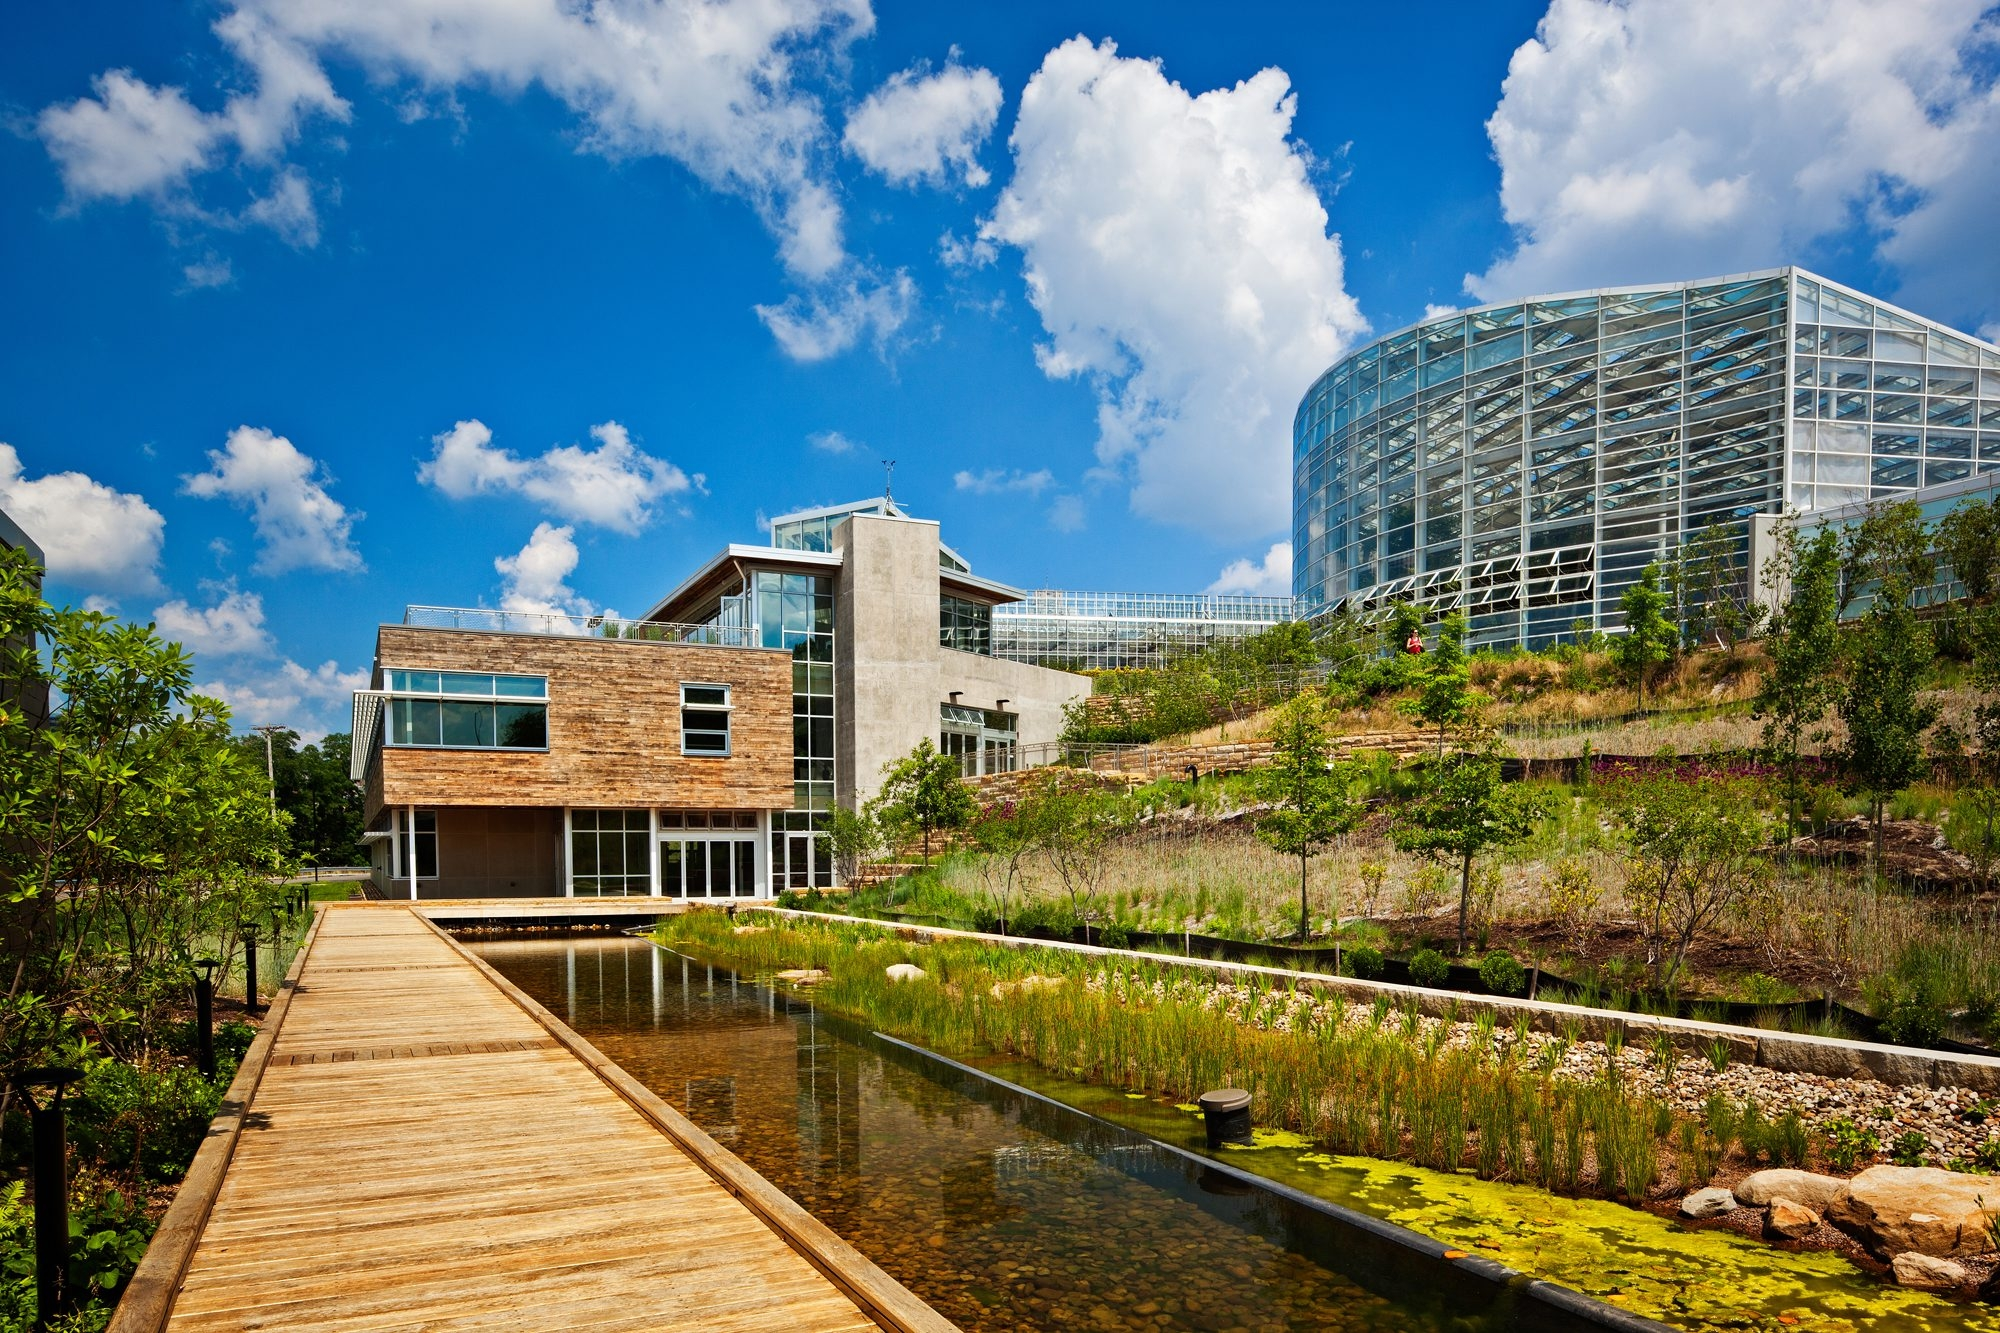 The Center for Sustainable Landscapes at the Phipps Conservatory and Botanical Gardens has a rooftop garden where all the food is grown for its restaurant Bloom.